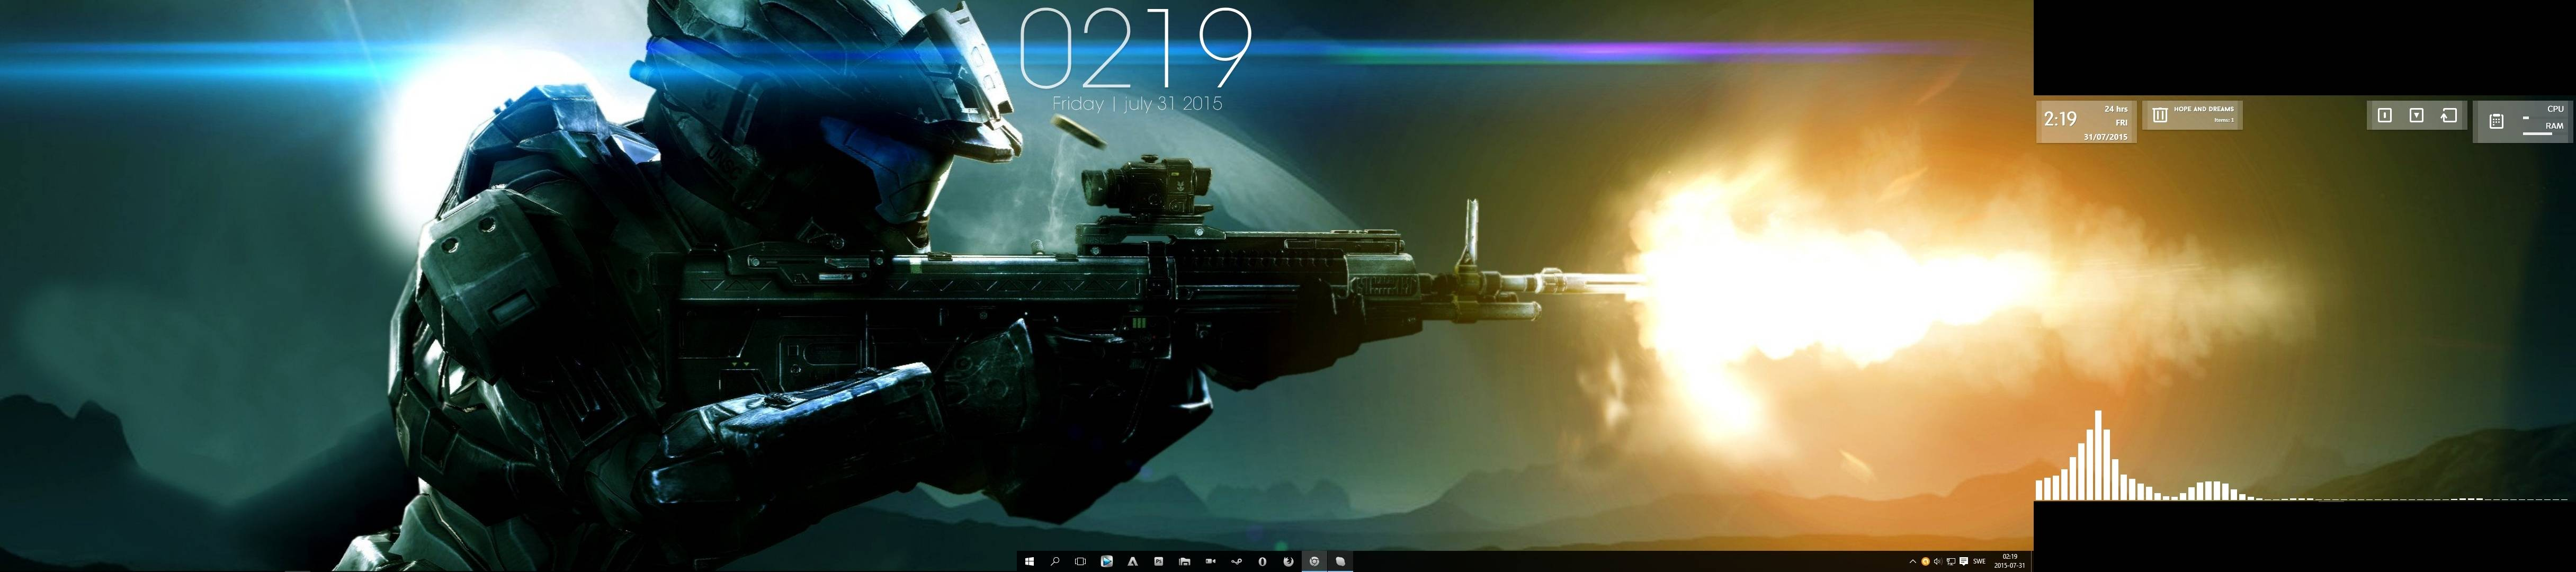 What Does Your Desktop Look Like? Skyrmb10